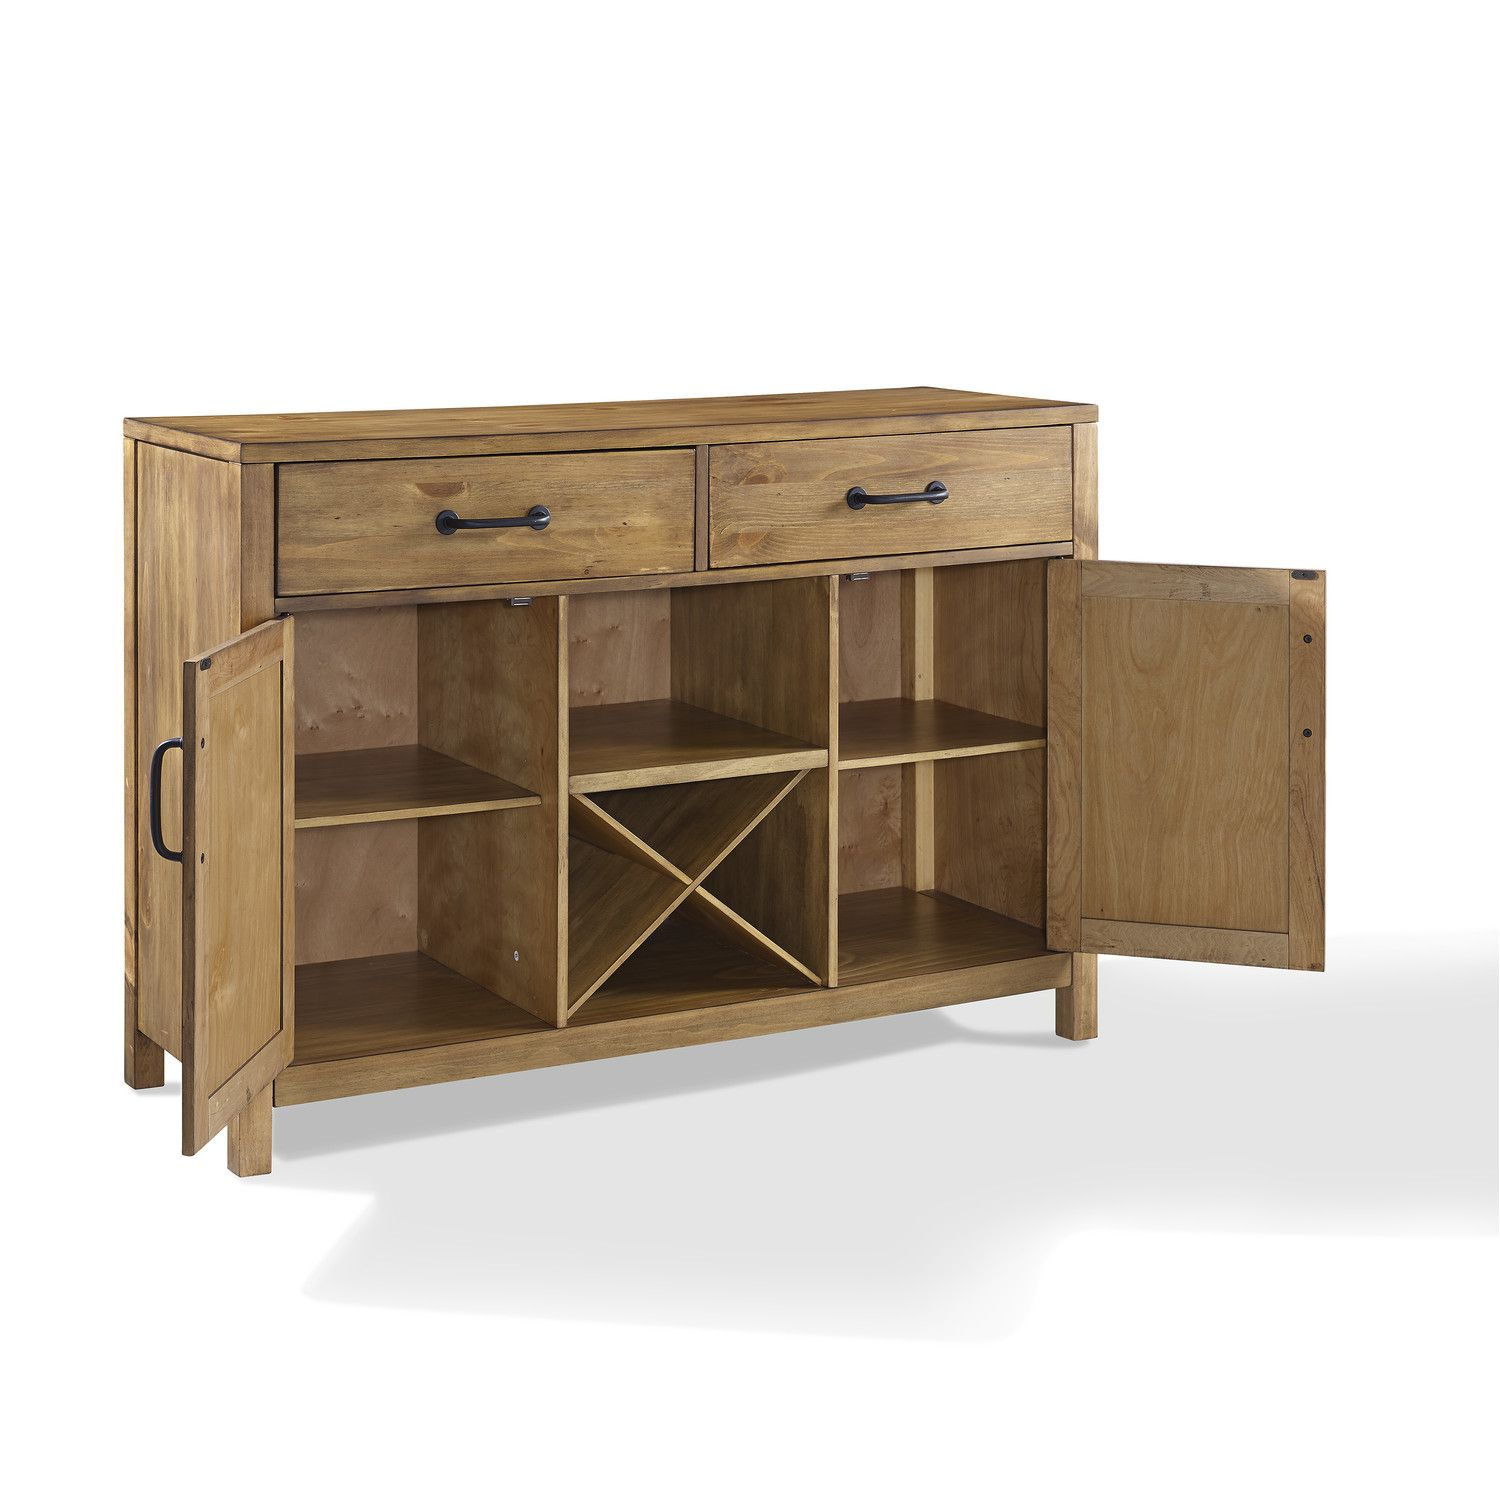 Wildon Home ® Brittany Buffet | Furniture.kids.beds.toys inside Sideboards By Wildon Home (Image 29 of 30)